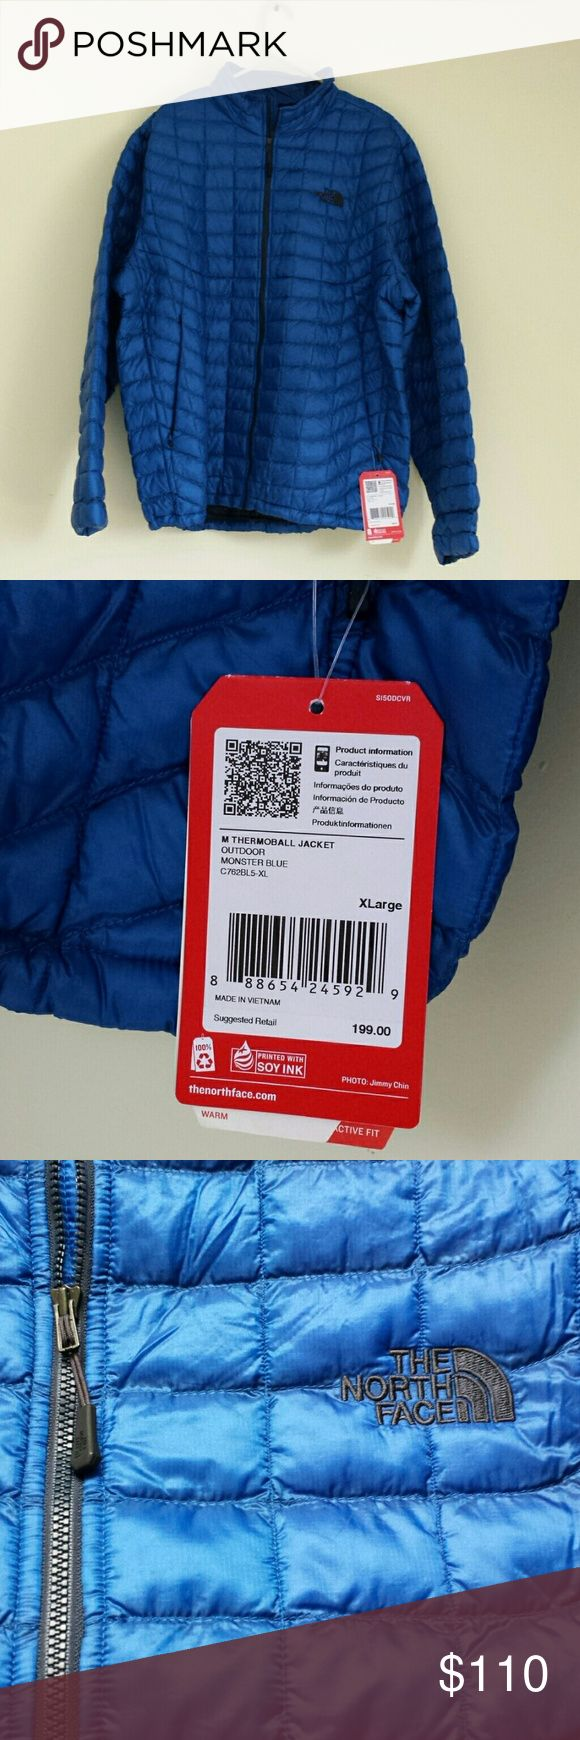 NWT North Face Thermoball puffer jacket -Ultralight, packable insulated jacket retains warmth even when wet  -Thermoball powered by PrimaLoft synthetic insulation -Compressibility of down with the wet-weather insulating performance of synthetics  -Zippered hand pockets -Internal elastic cuffs  -Hem cinch-cord system in hand pockets  -Stows in hand pocket -Monster blue color North Face Jackets & Coats